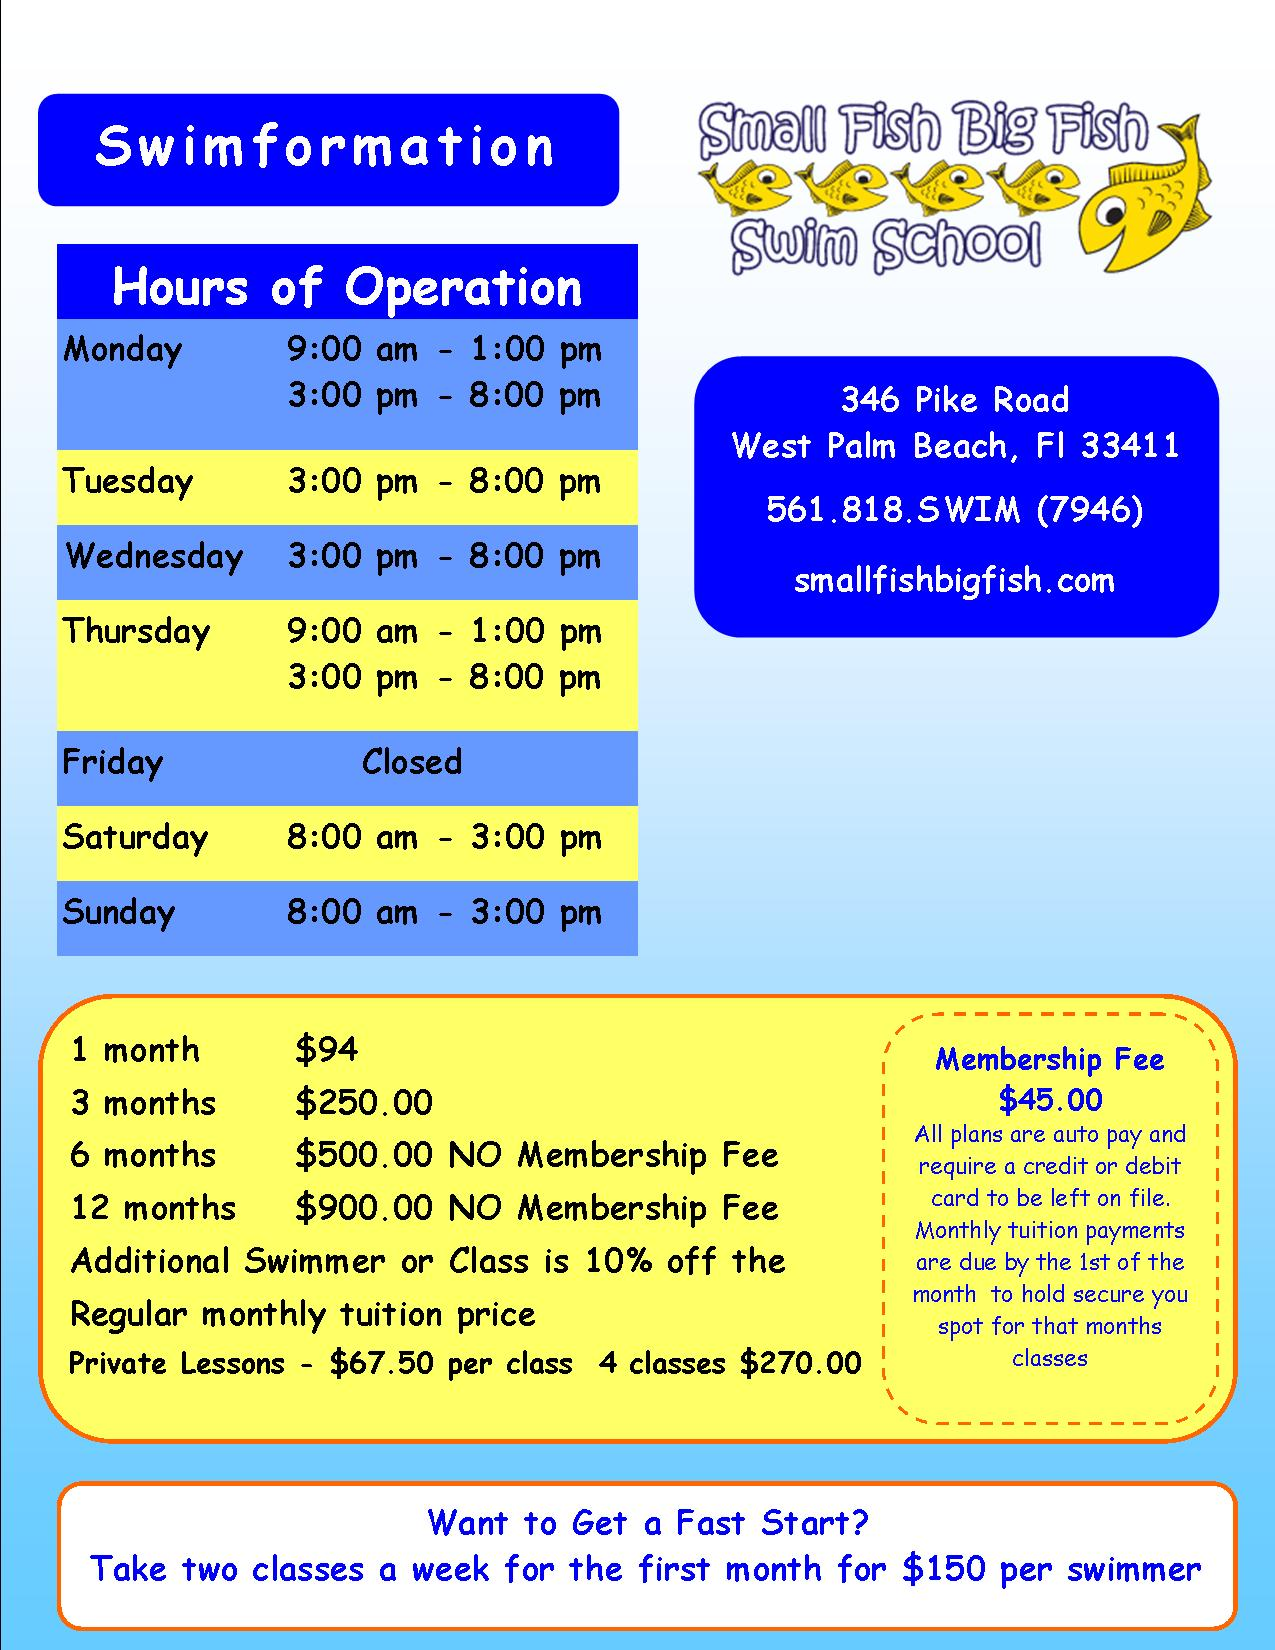 2015 Small Fish Big Fish Swim School Hours & Membership Rates